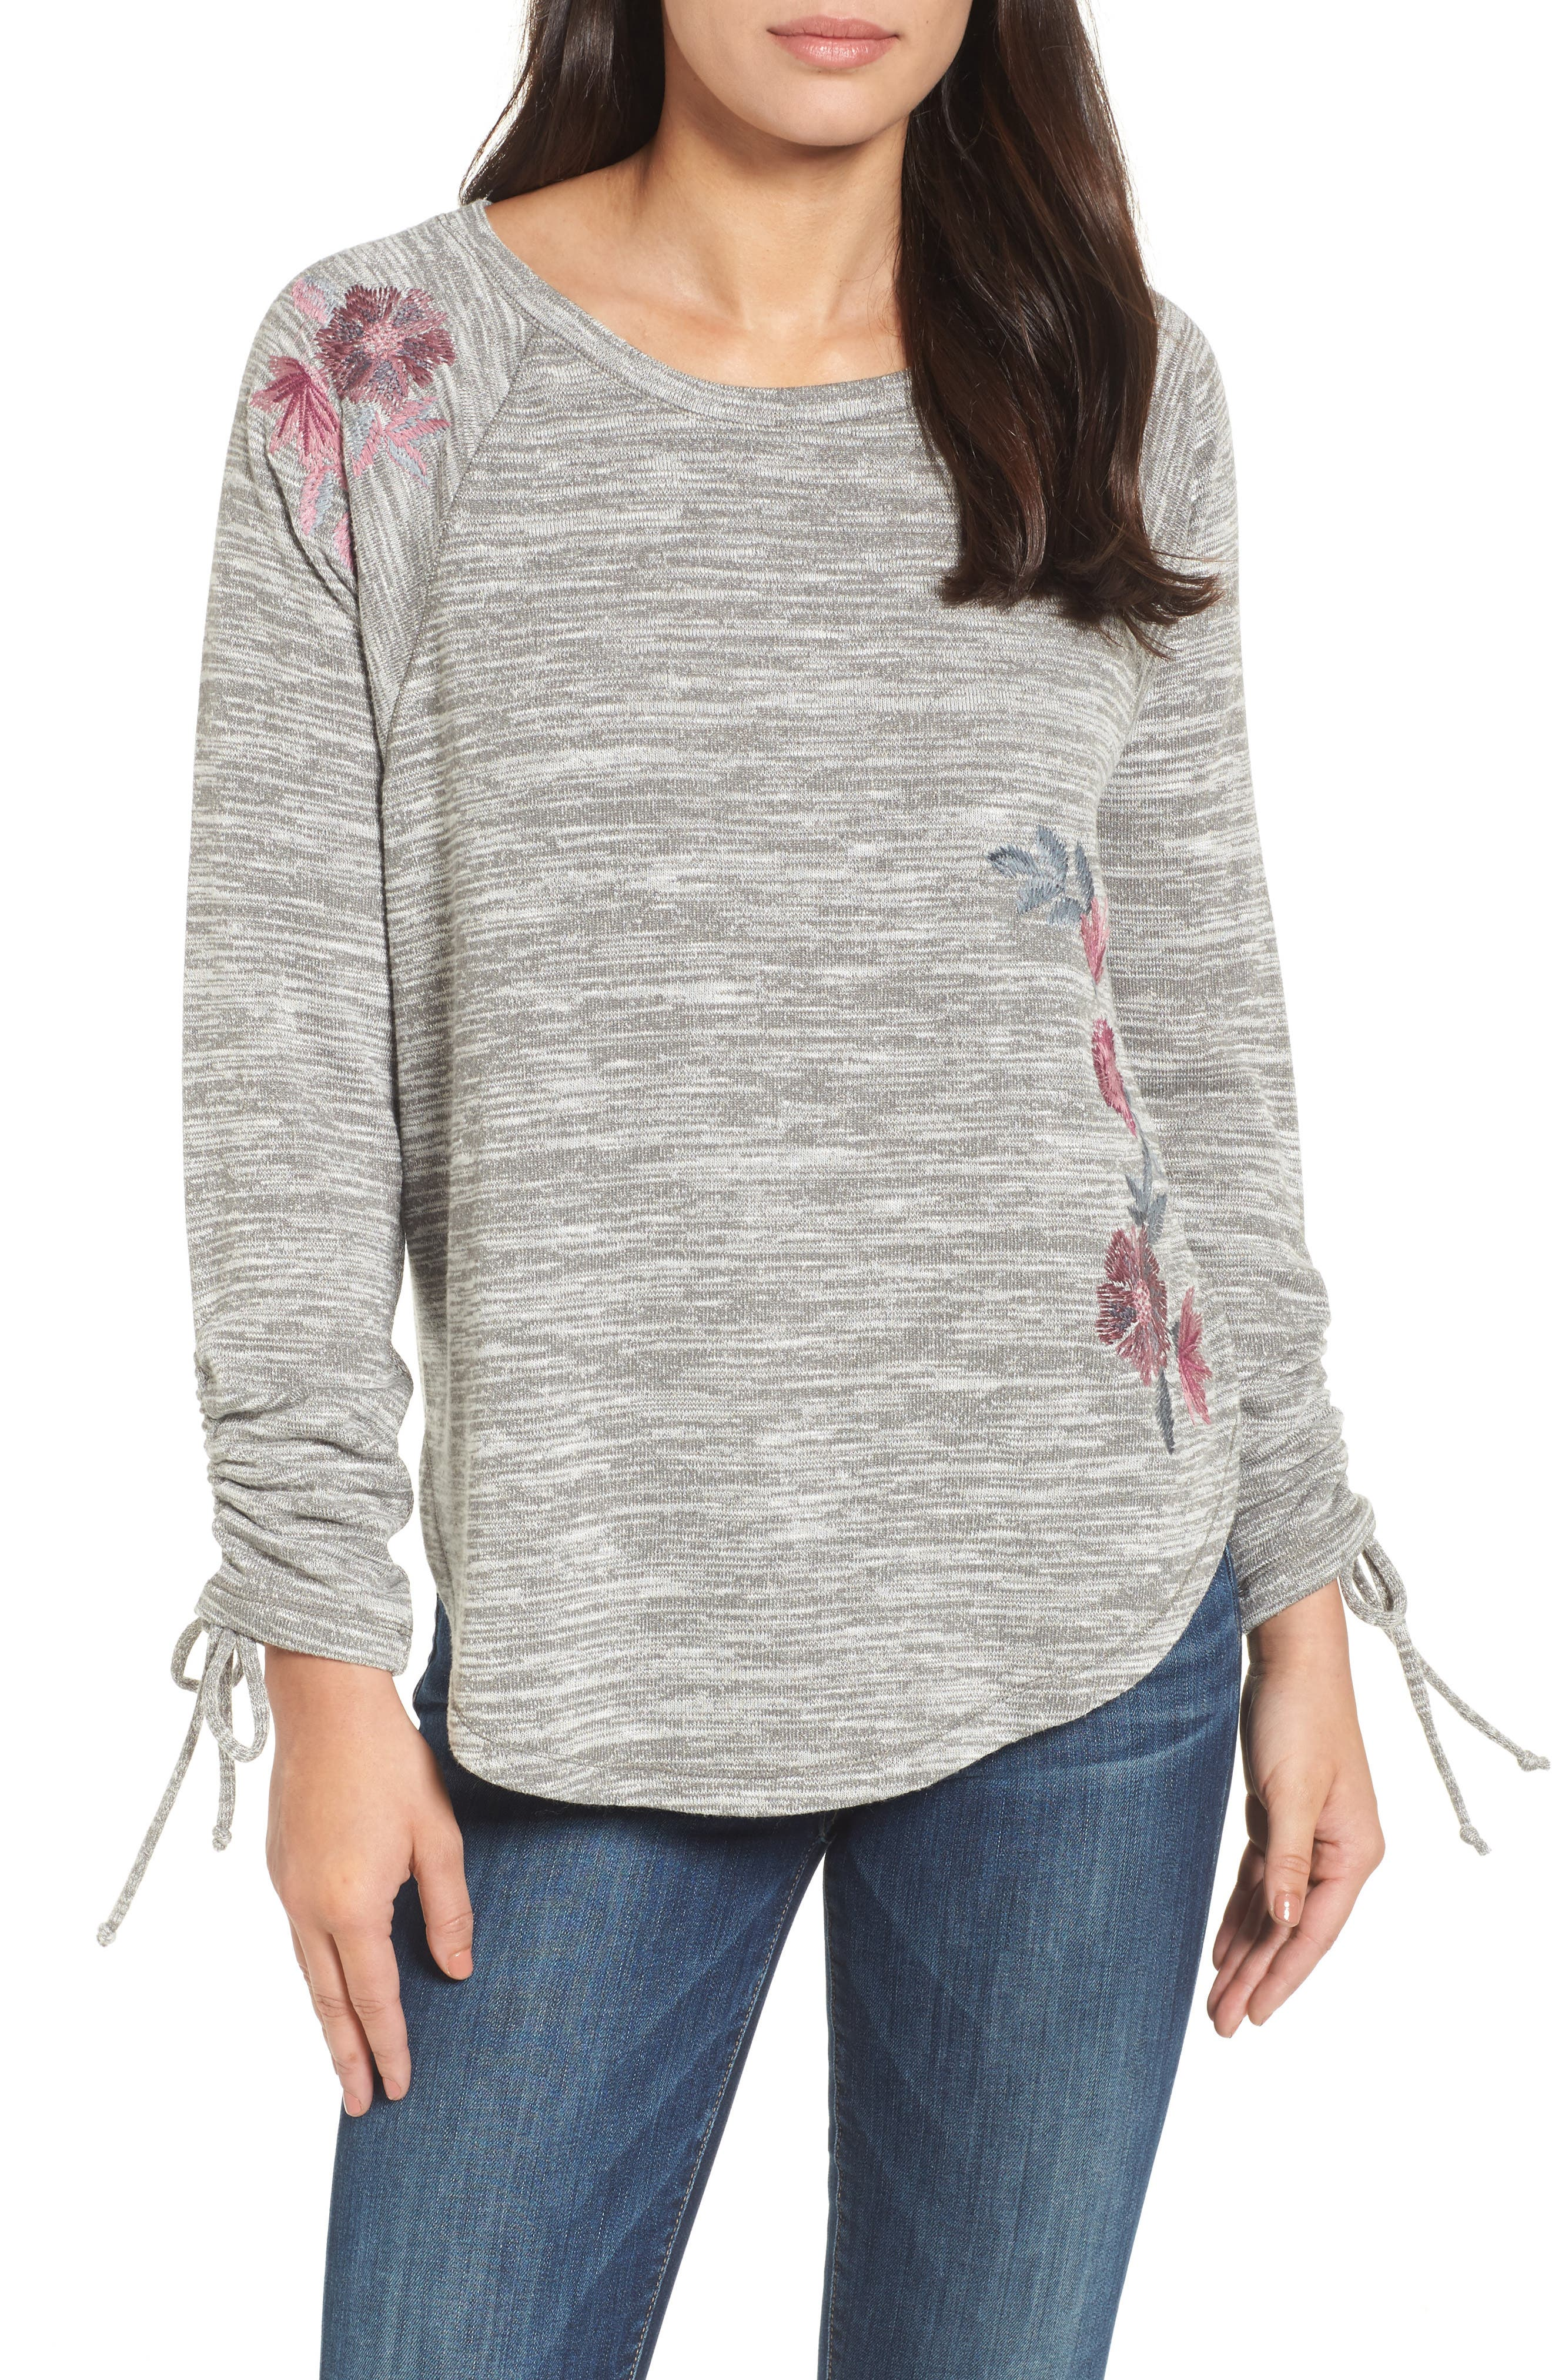 Hacci Embroidered Sweatshirt,                             Main thumbnail 1, color,                             Grey Heather